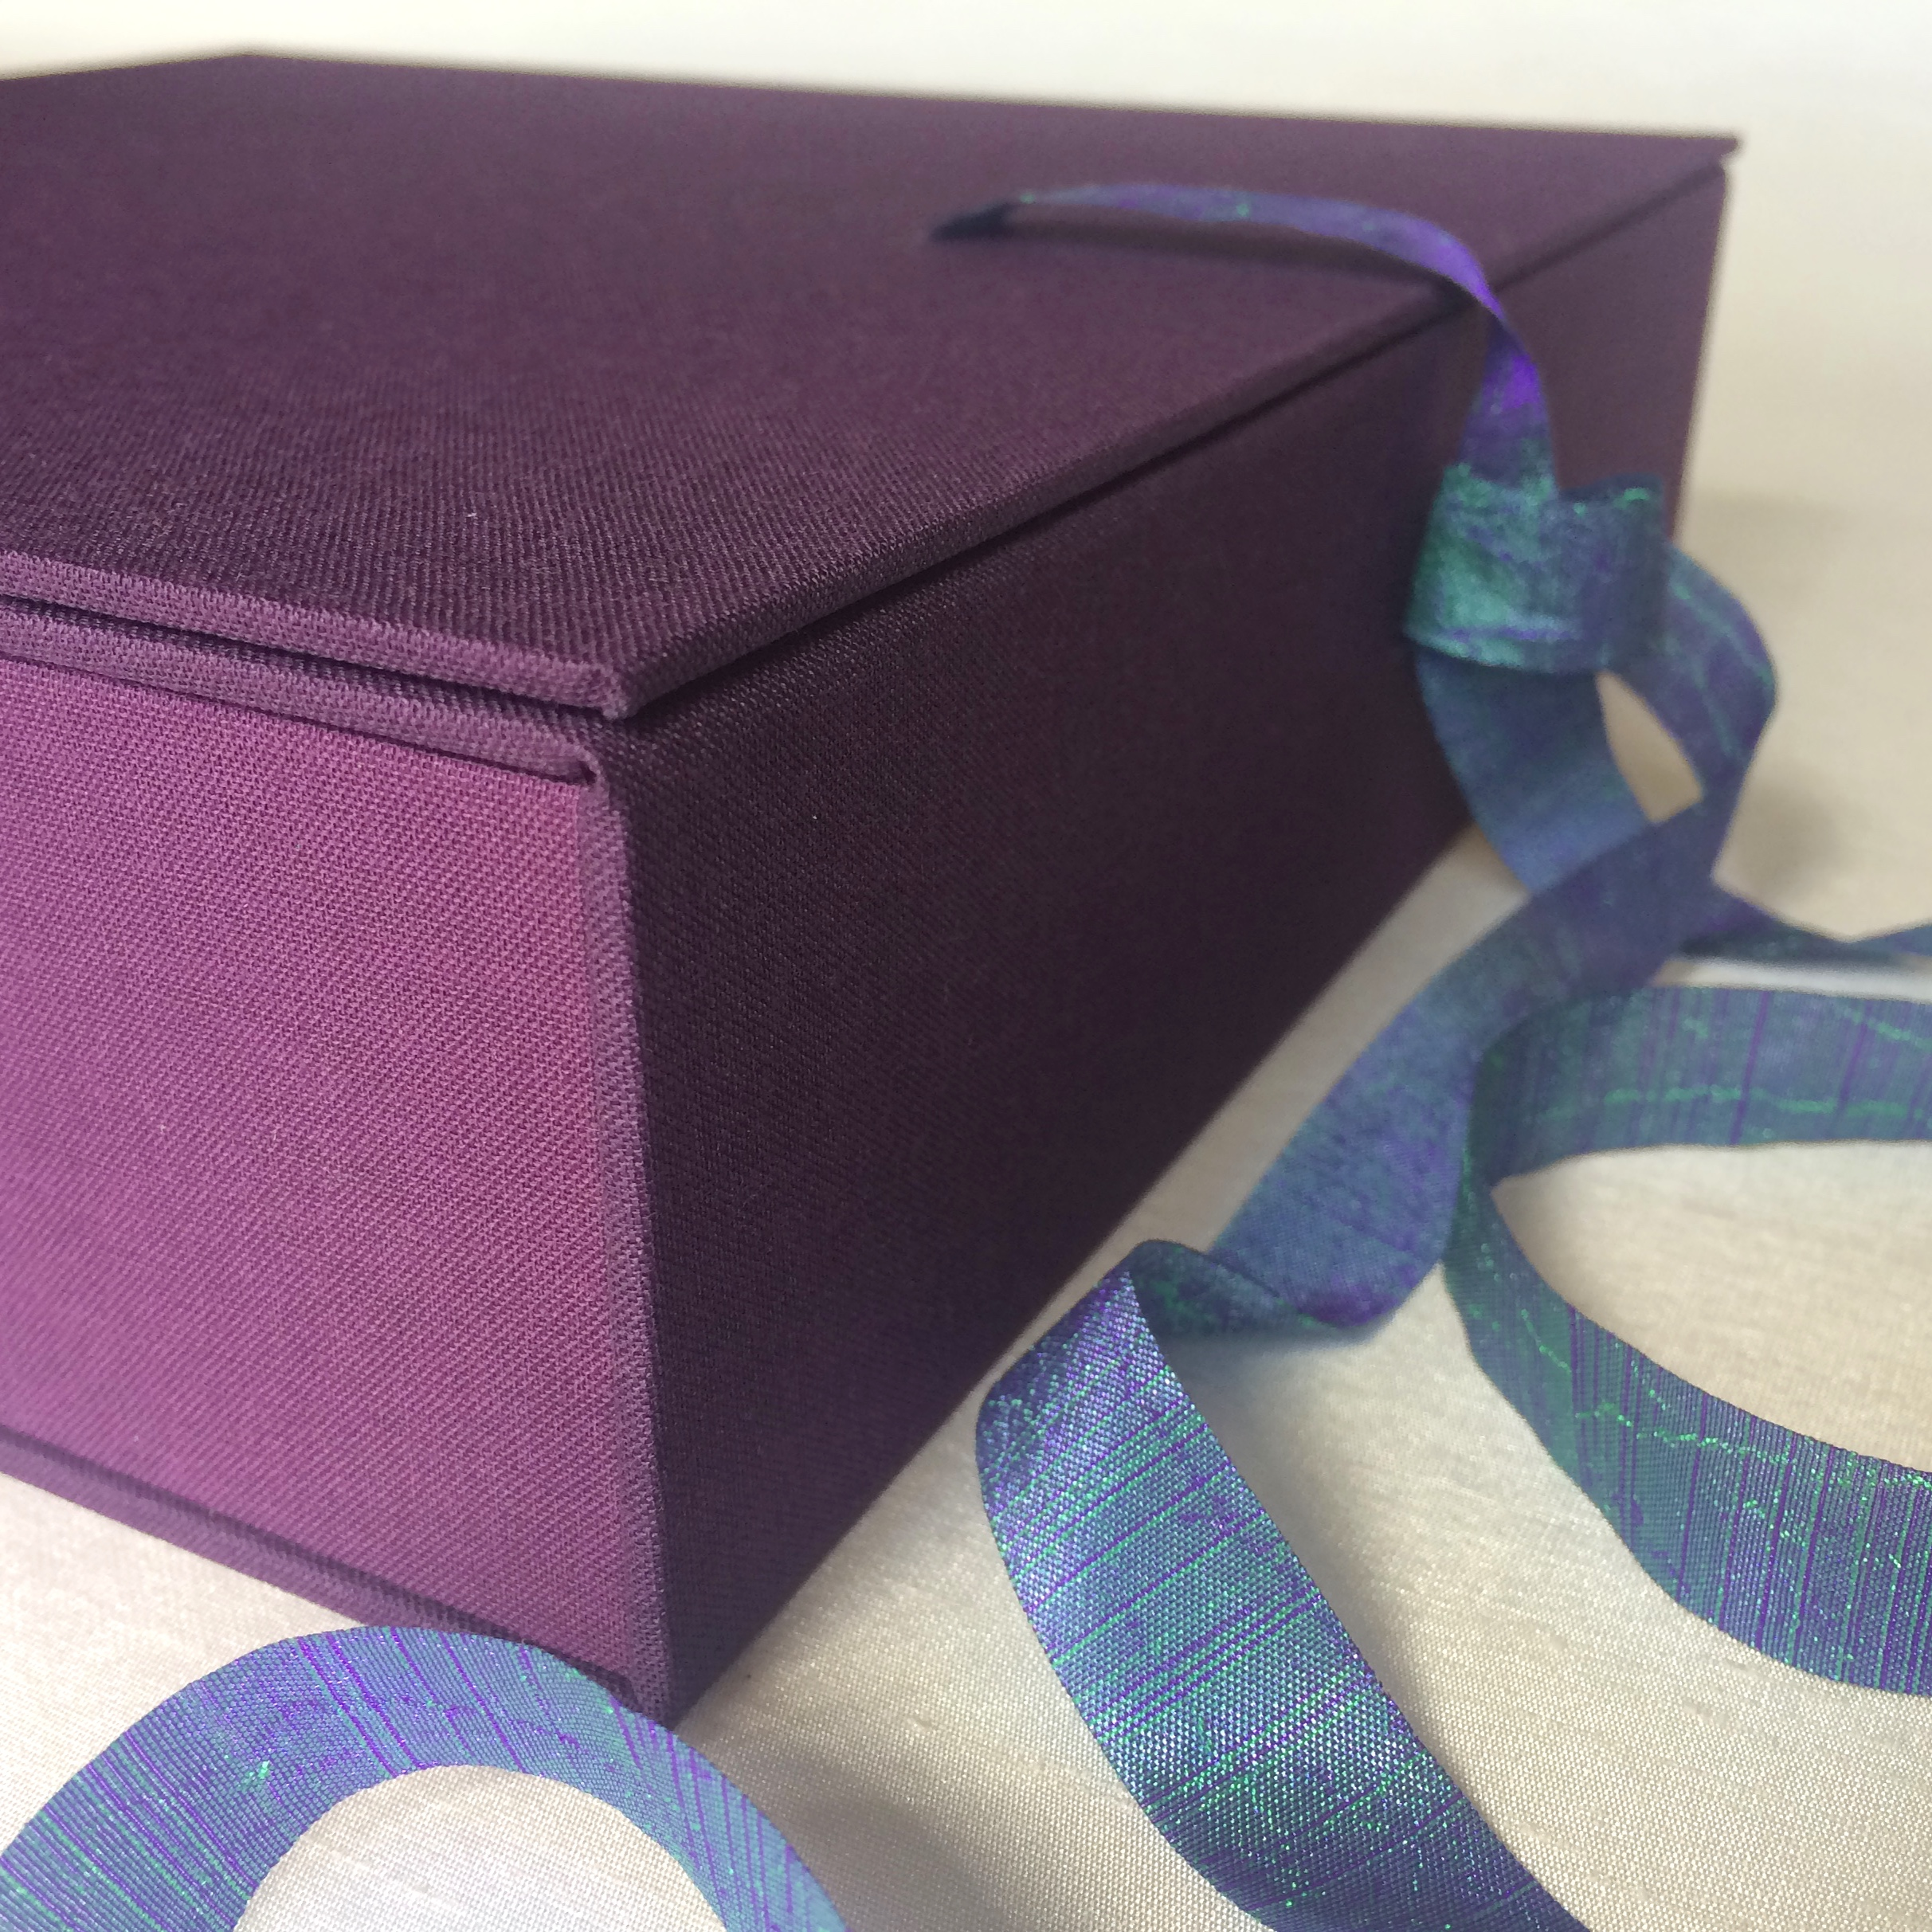 Elegant box to hold handmade photo album